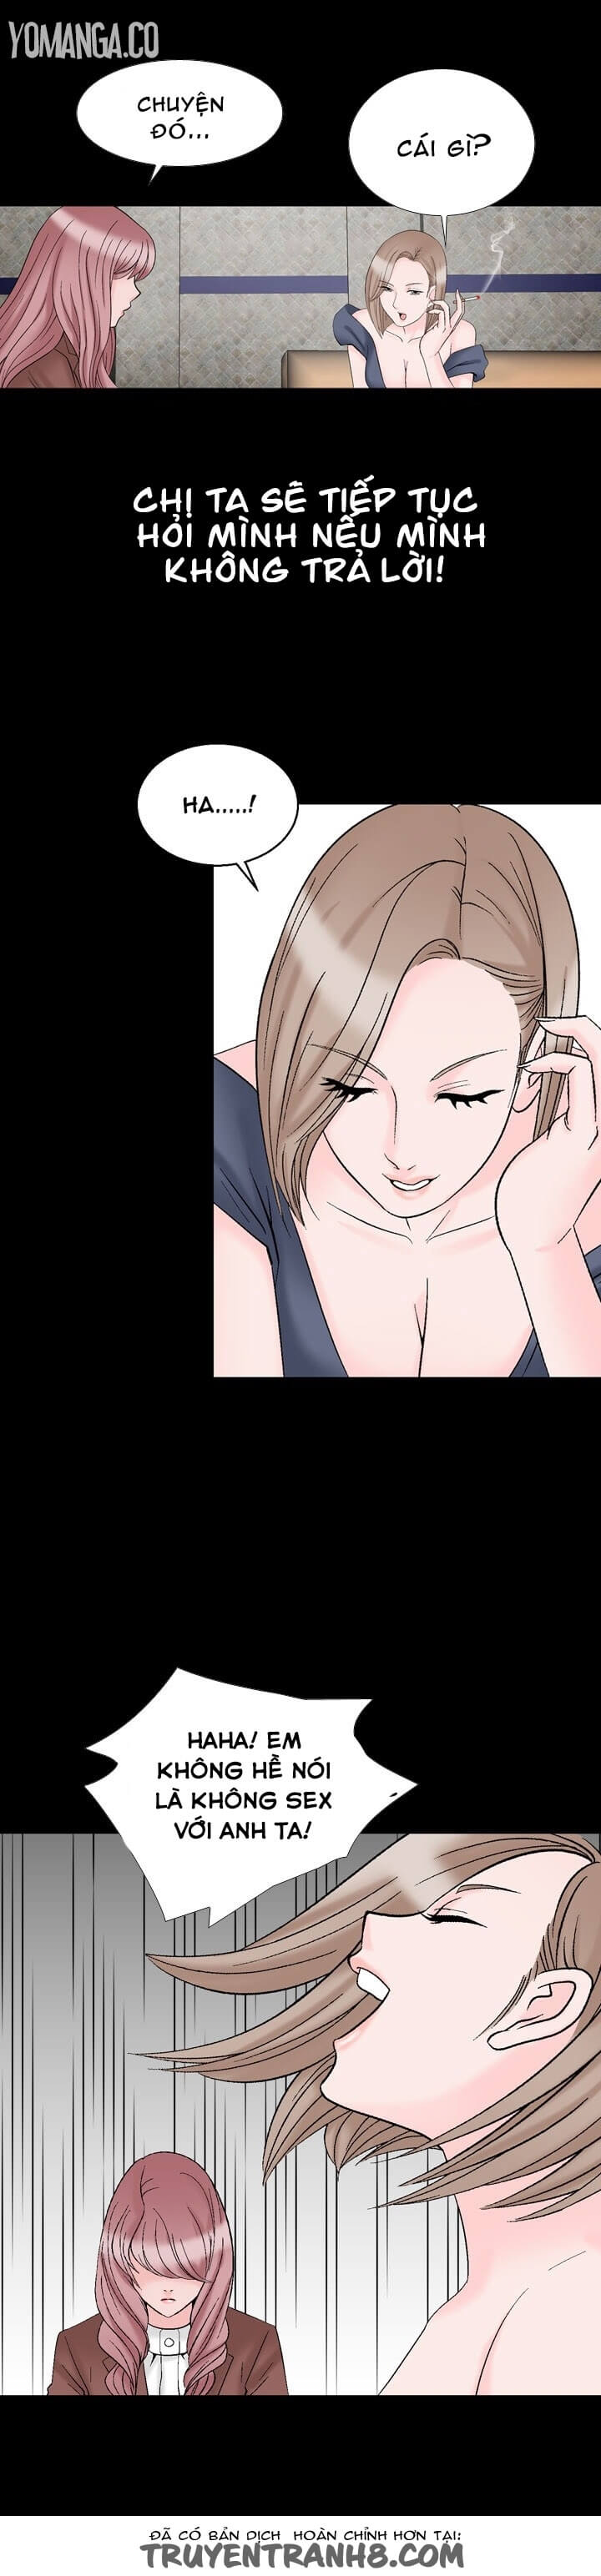 The Taste Of The Hand Chapter 20 - Trang 15